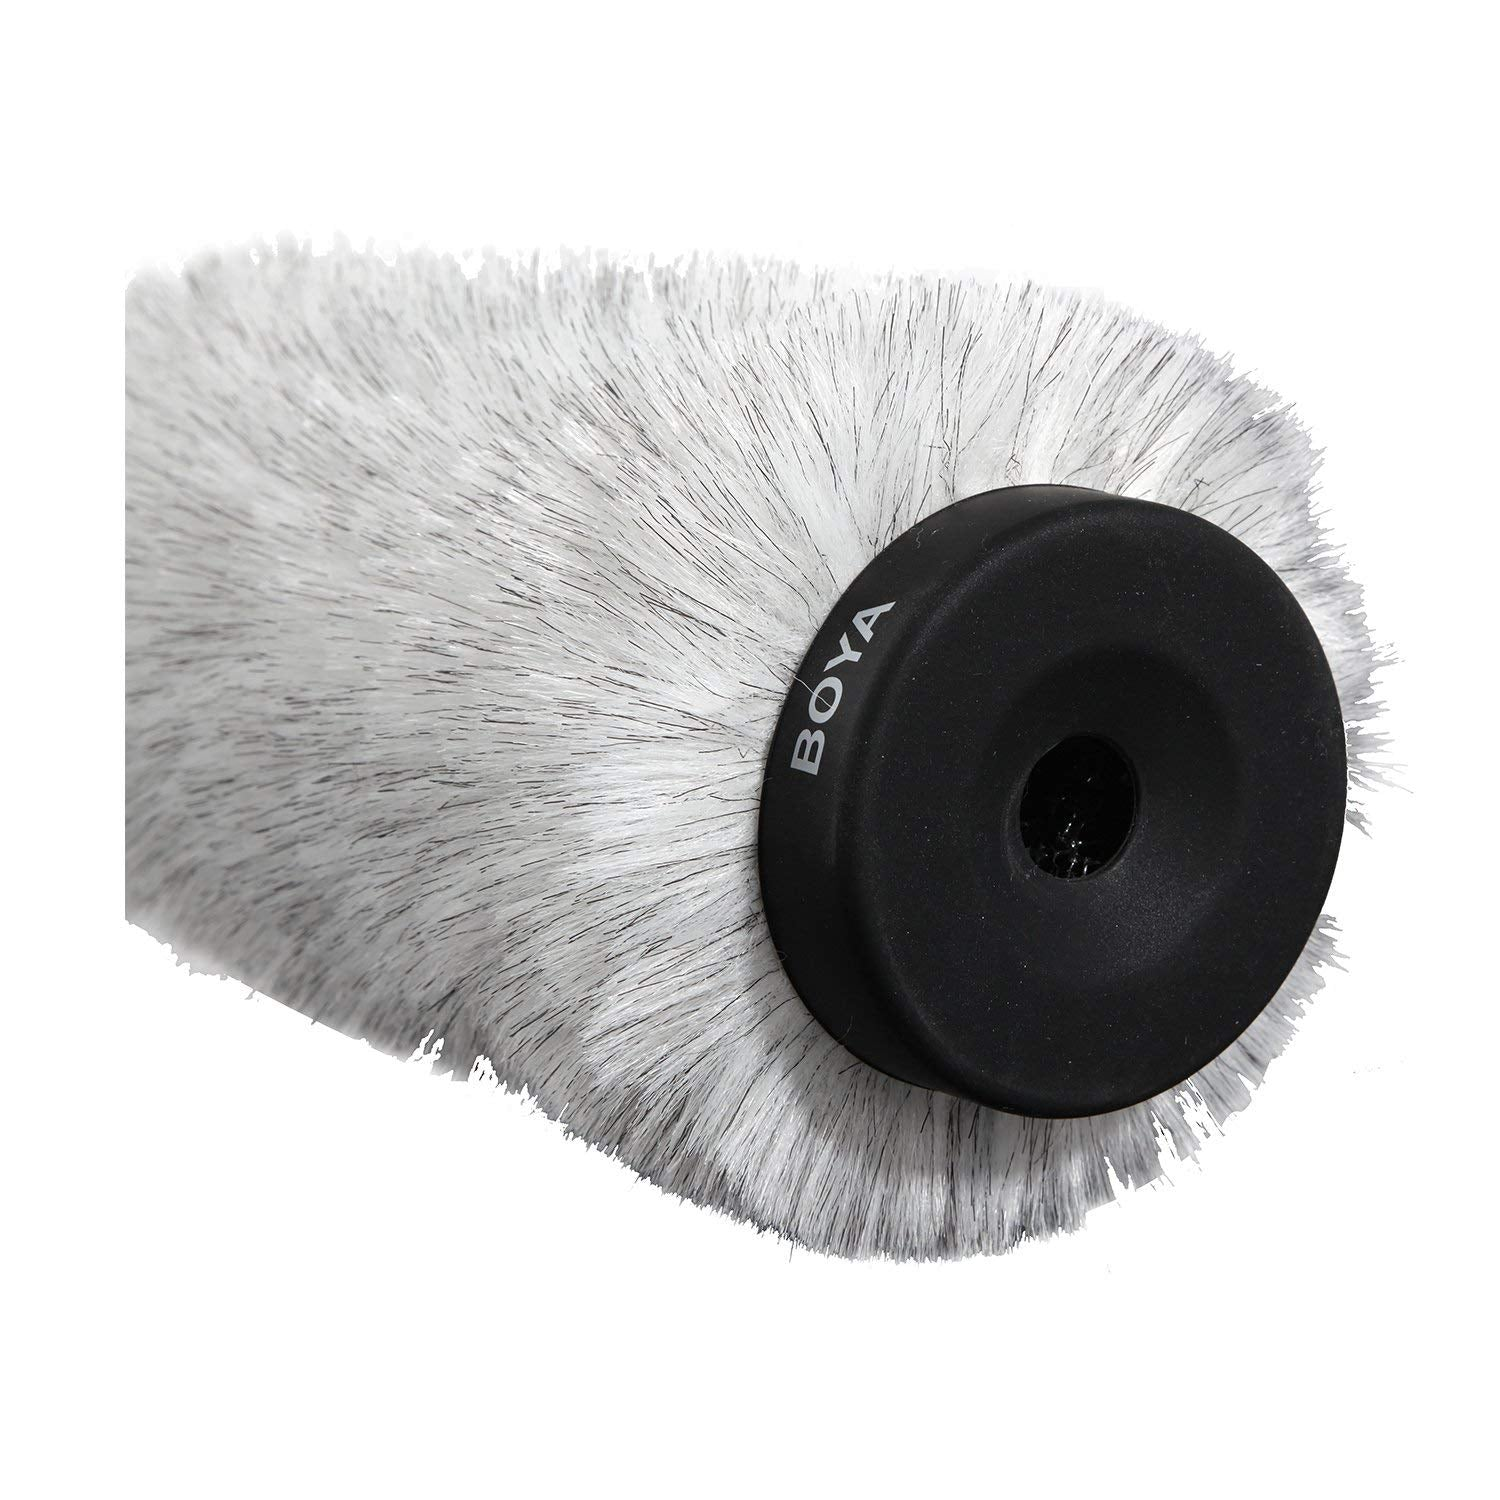 BOYA BY-P240 Furry Outdoor Interview Windshield Muff for Shotgun Capacitor Microphones (Inside Depth 9.6)